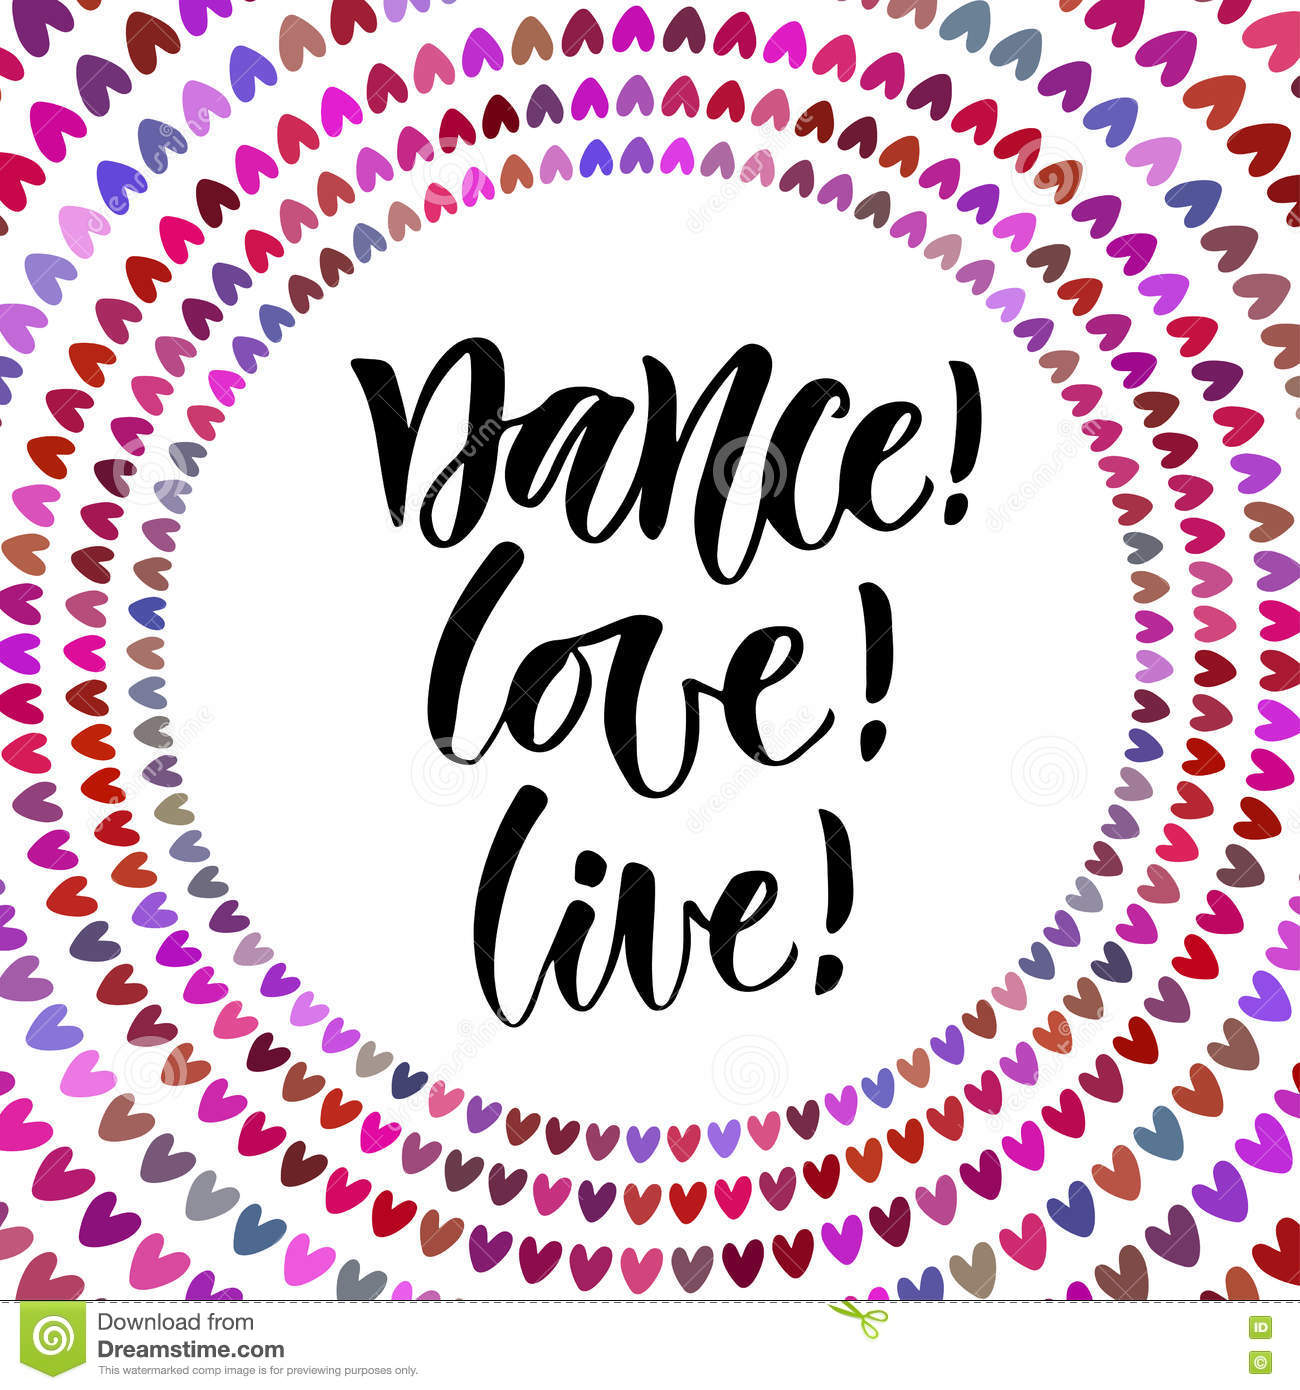 527+ Live Love Dance Svg Ppular Design